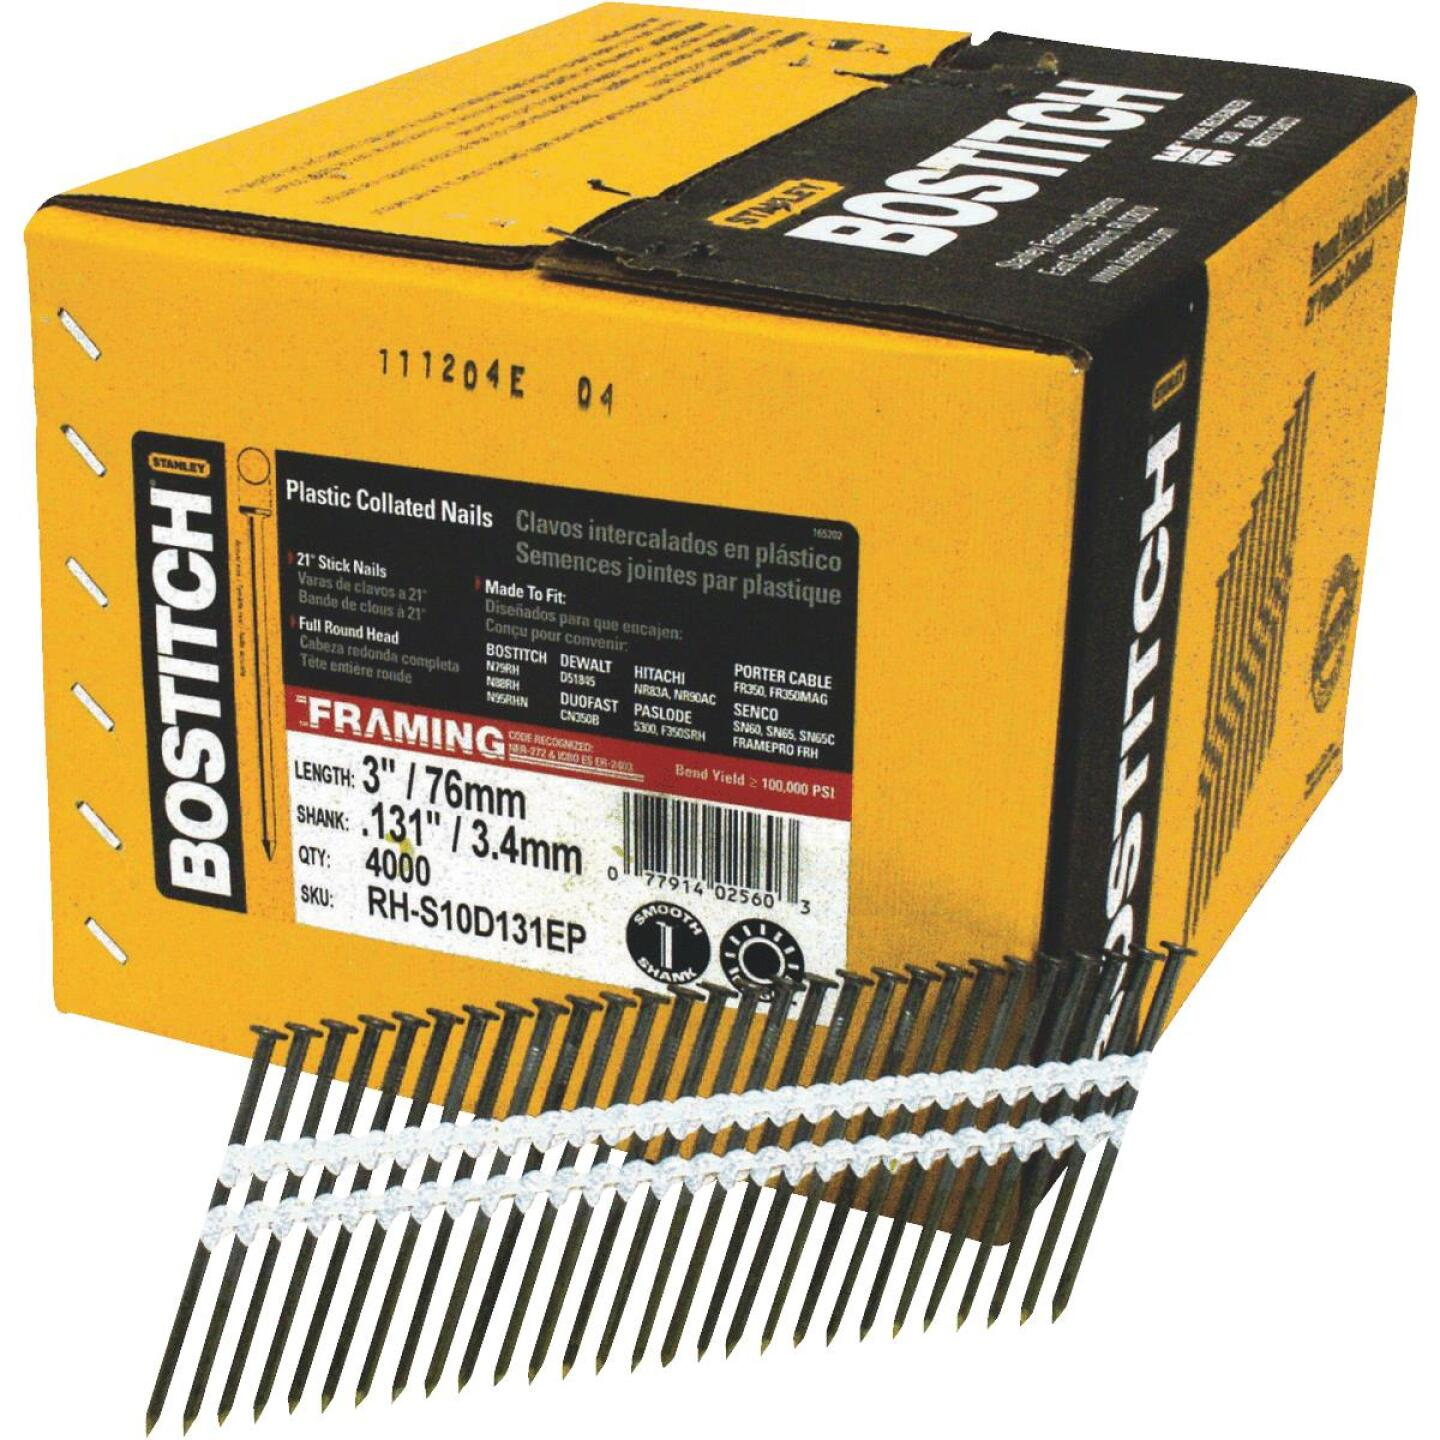 Bostitch 21 Degree Plastic Strip Coated Full Round Head Framing Stick Nails, 3 In. x .131 In. (4000 Ct.) Image 1